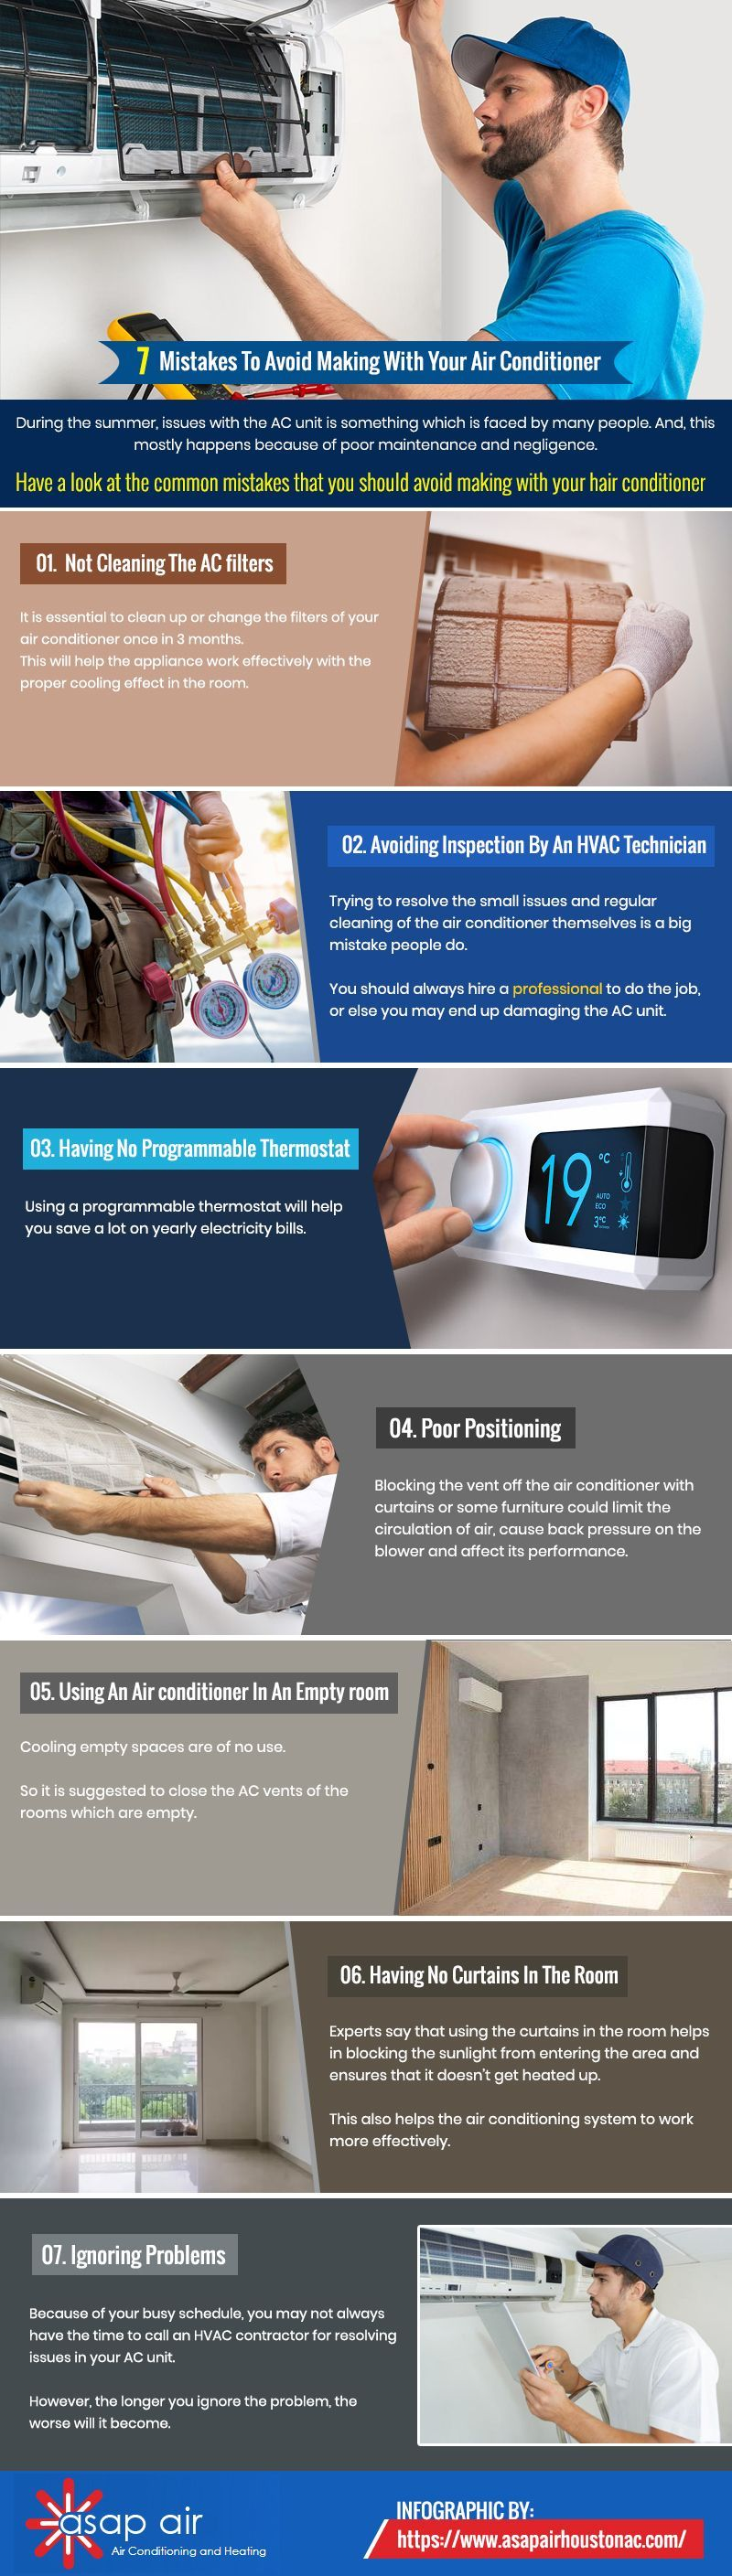 7 Mistakes To Avoid Making With Your Air Conditioner in